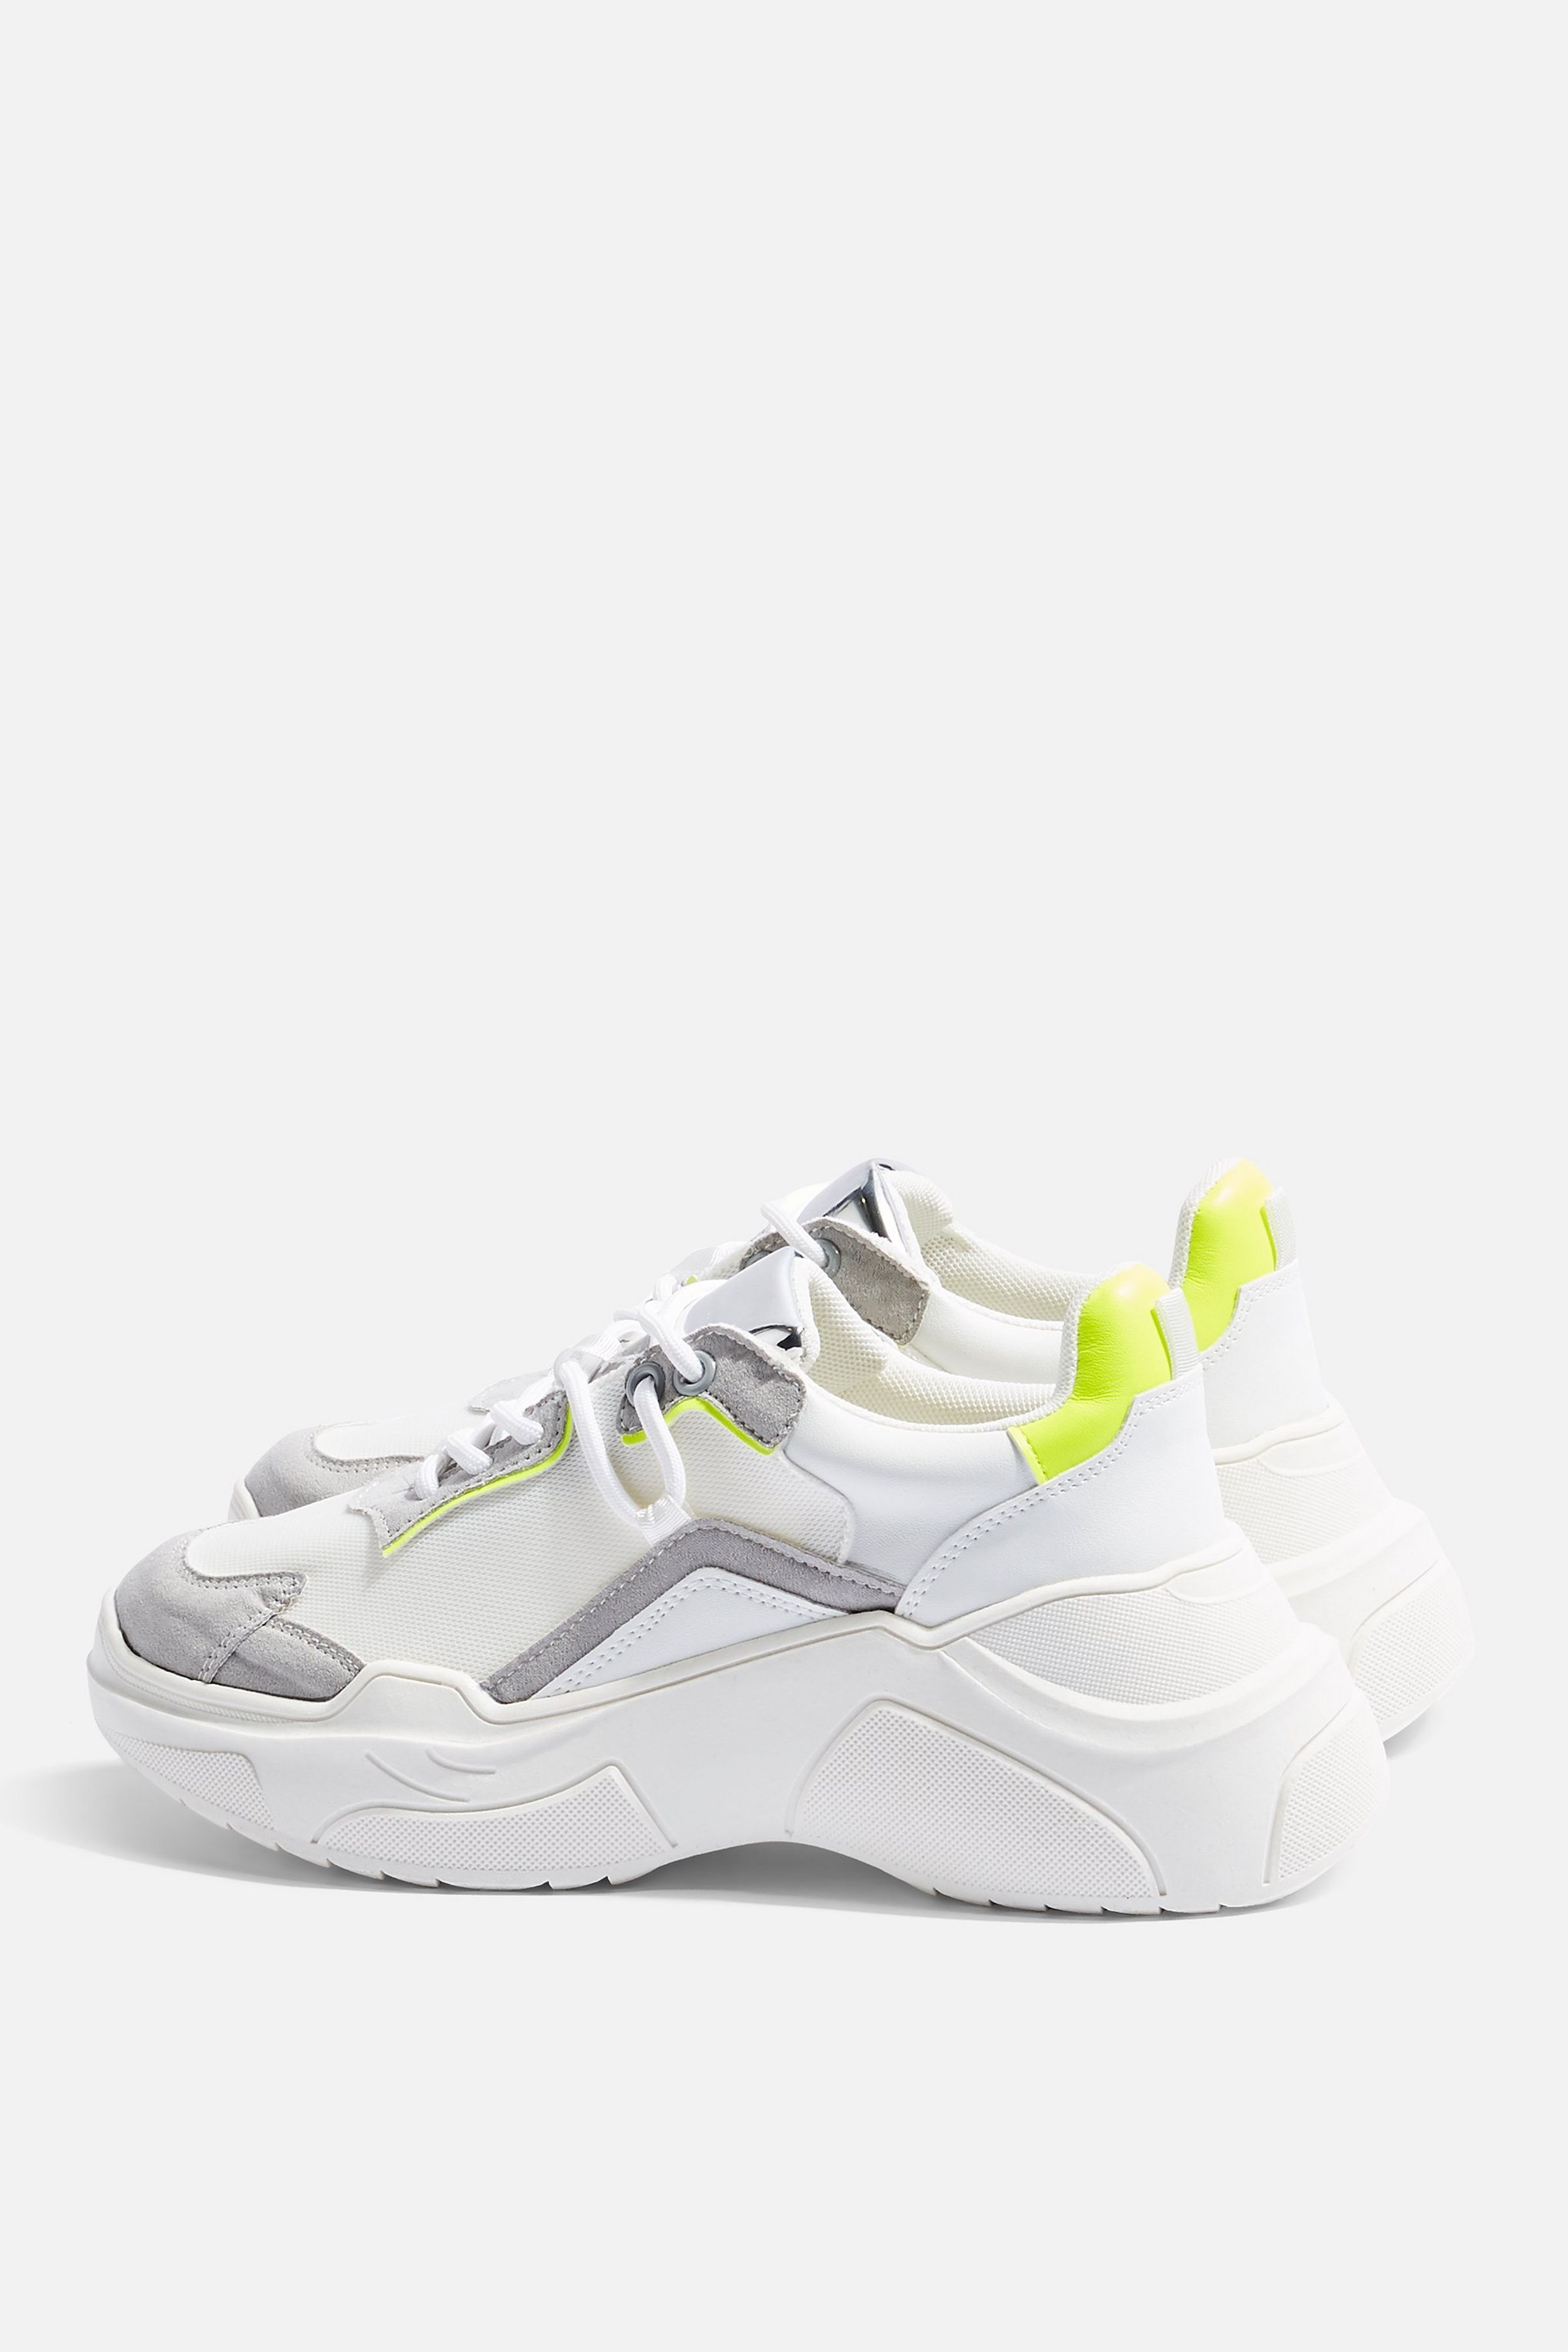 CHERRY Yellow Chunky Trainers   Topshop